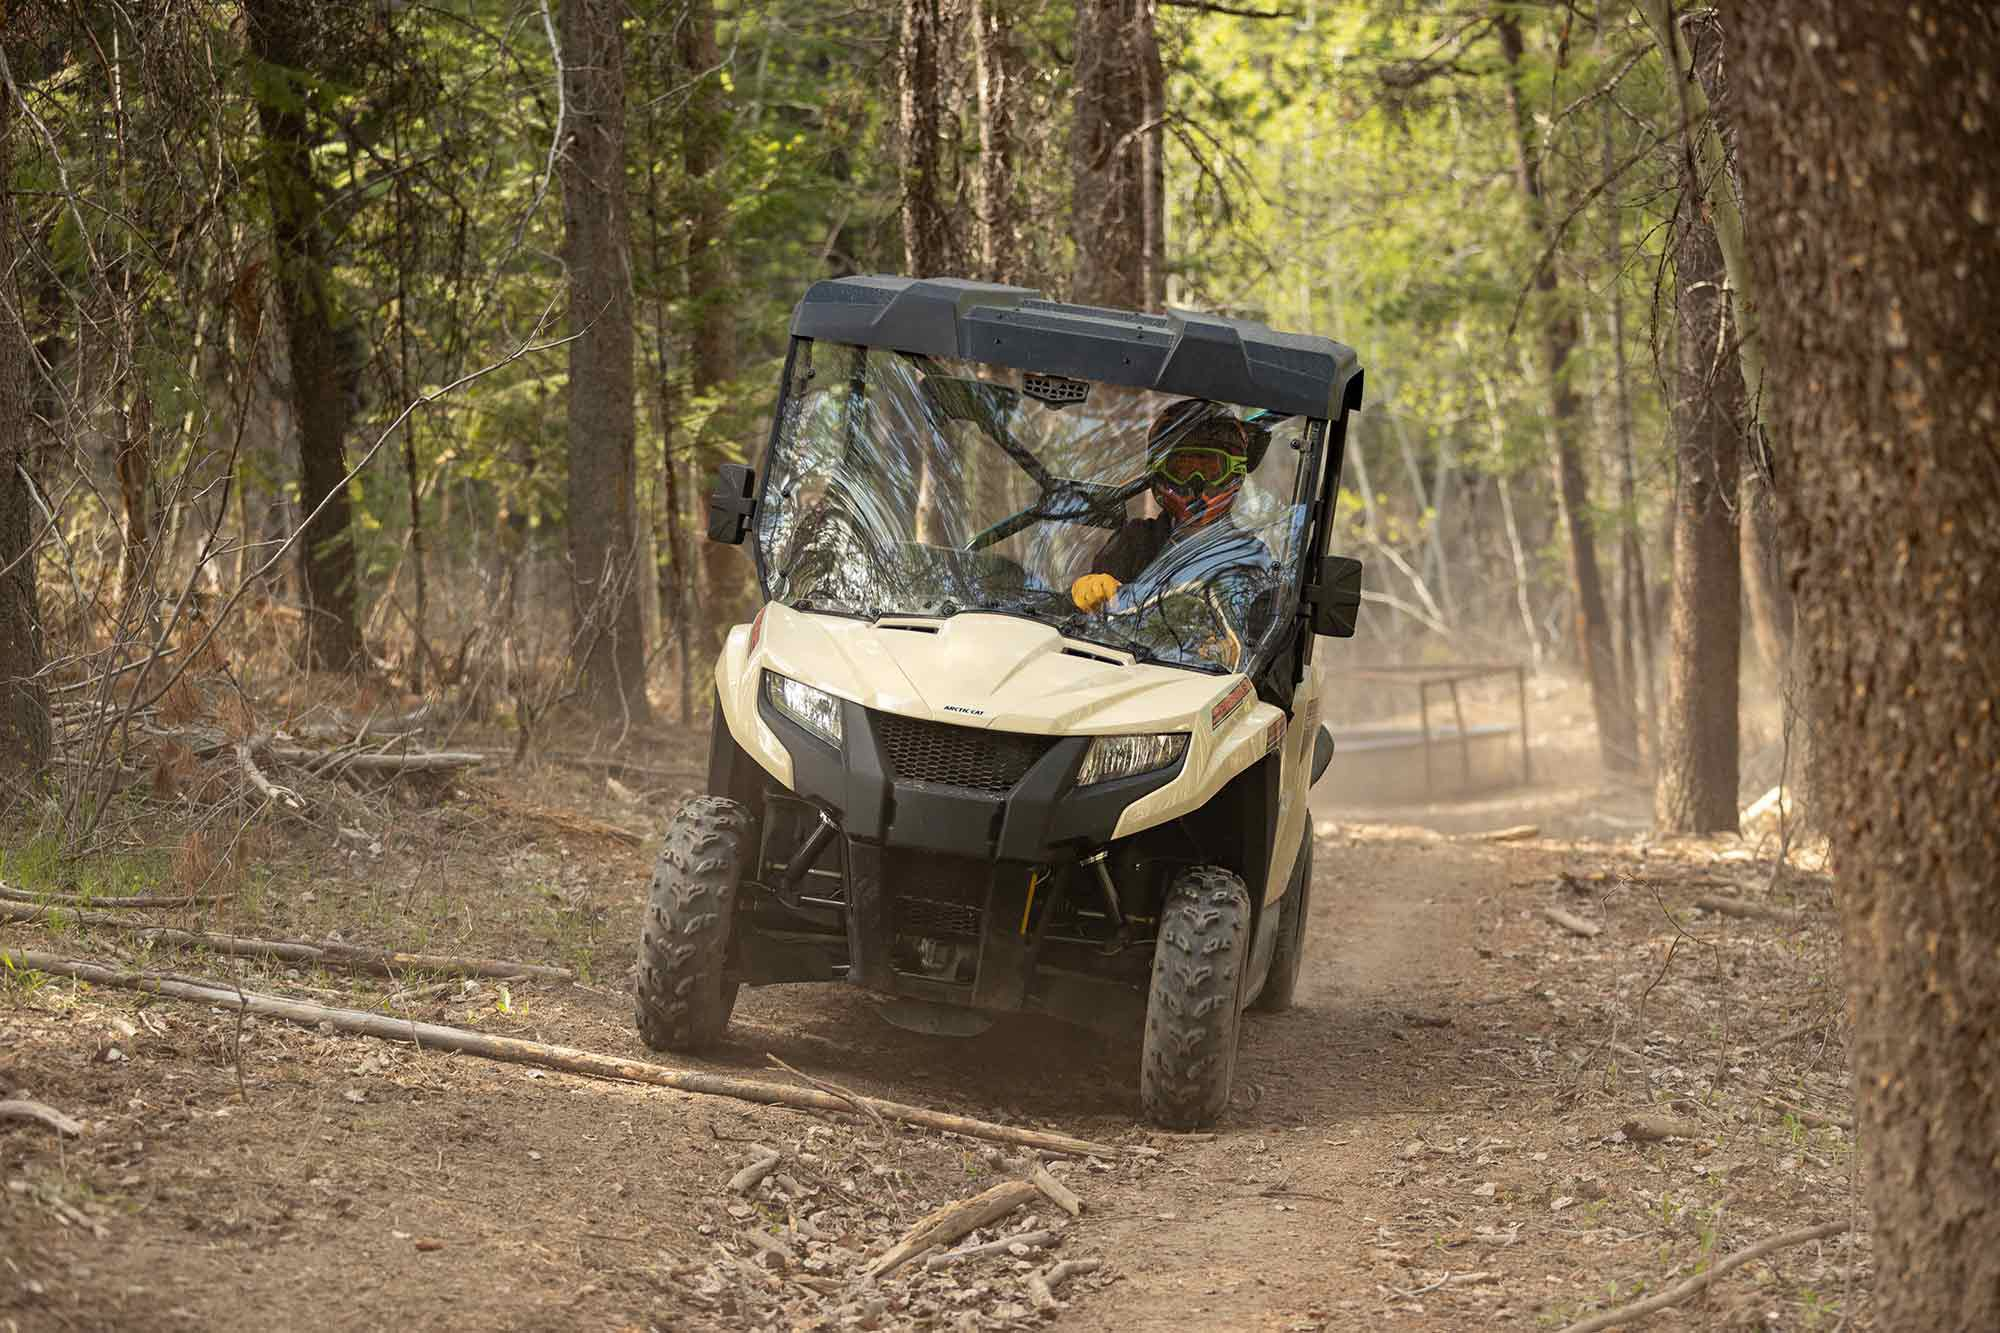 The 2022 Prowler 500 continues to work the middleweight utility class for Arctic Cat.